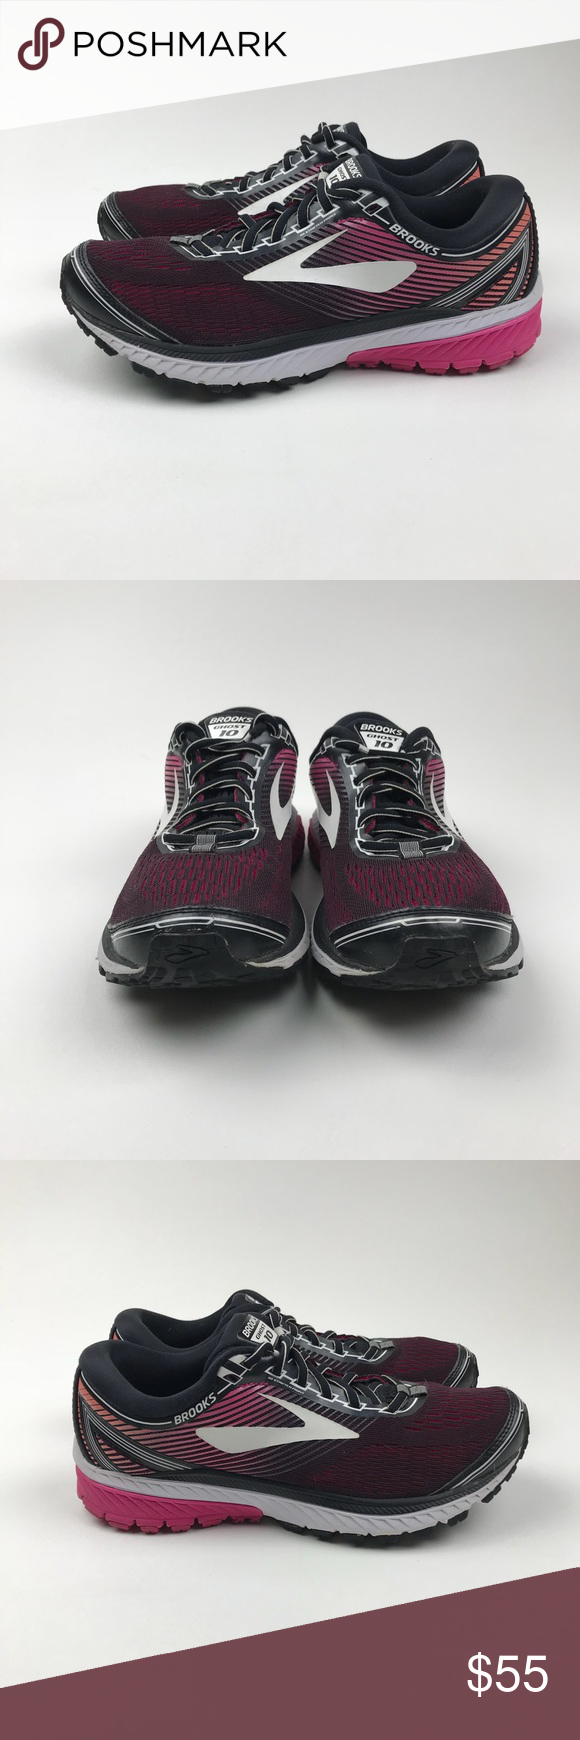 ccd9258a24299 Brooks Ghost 10 Running Shoe Black   Pink Peacock Brooks Ghost 10 Running  Shoe Size